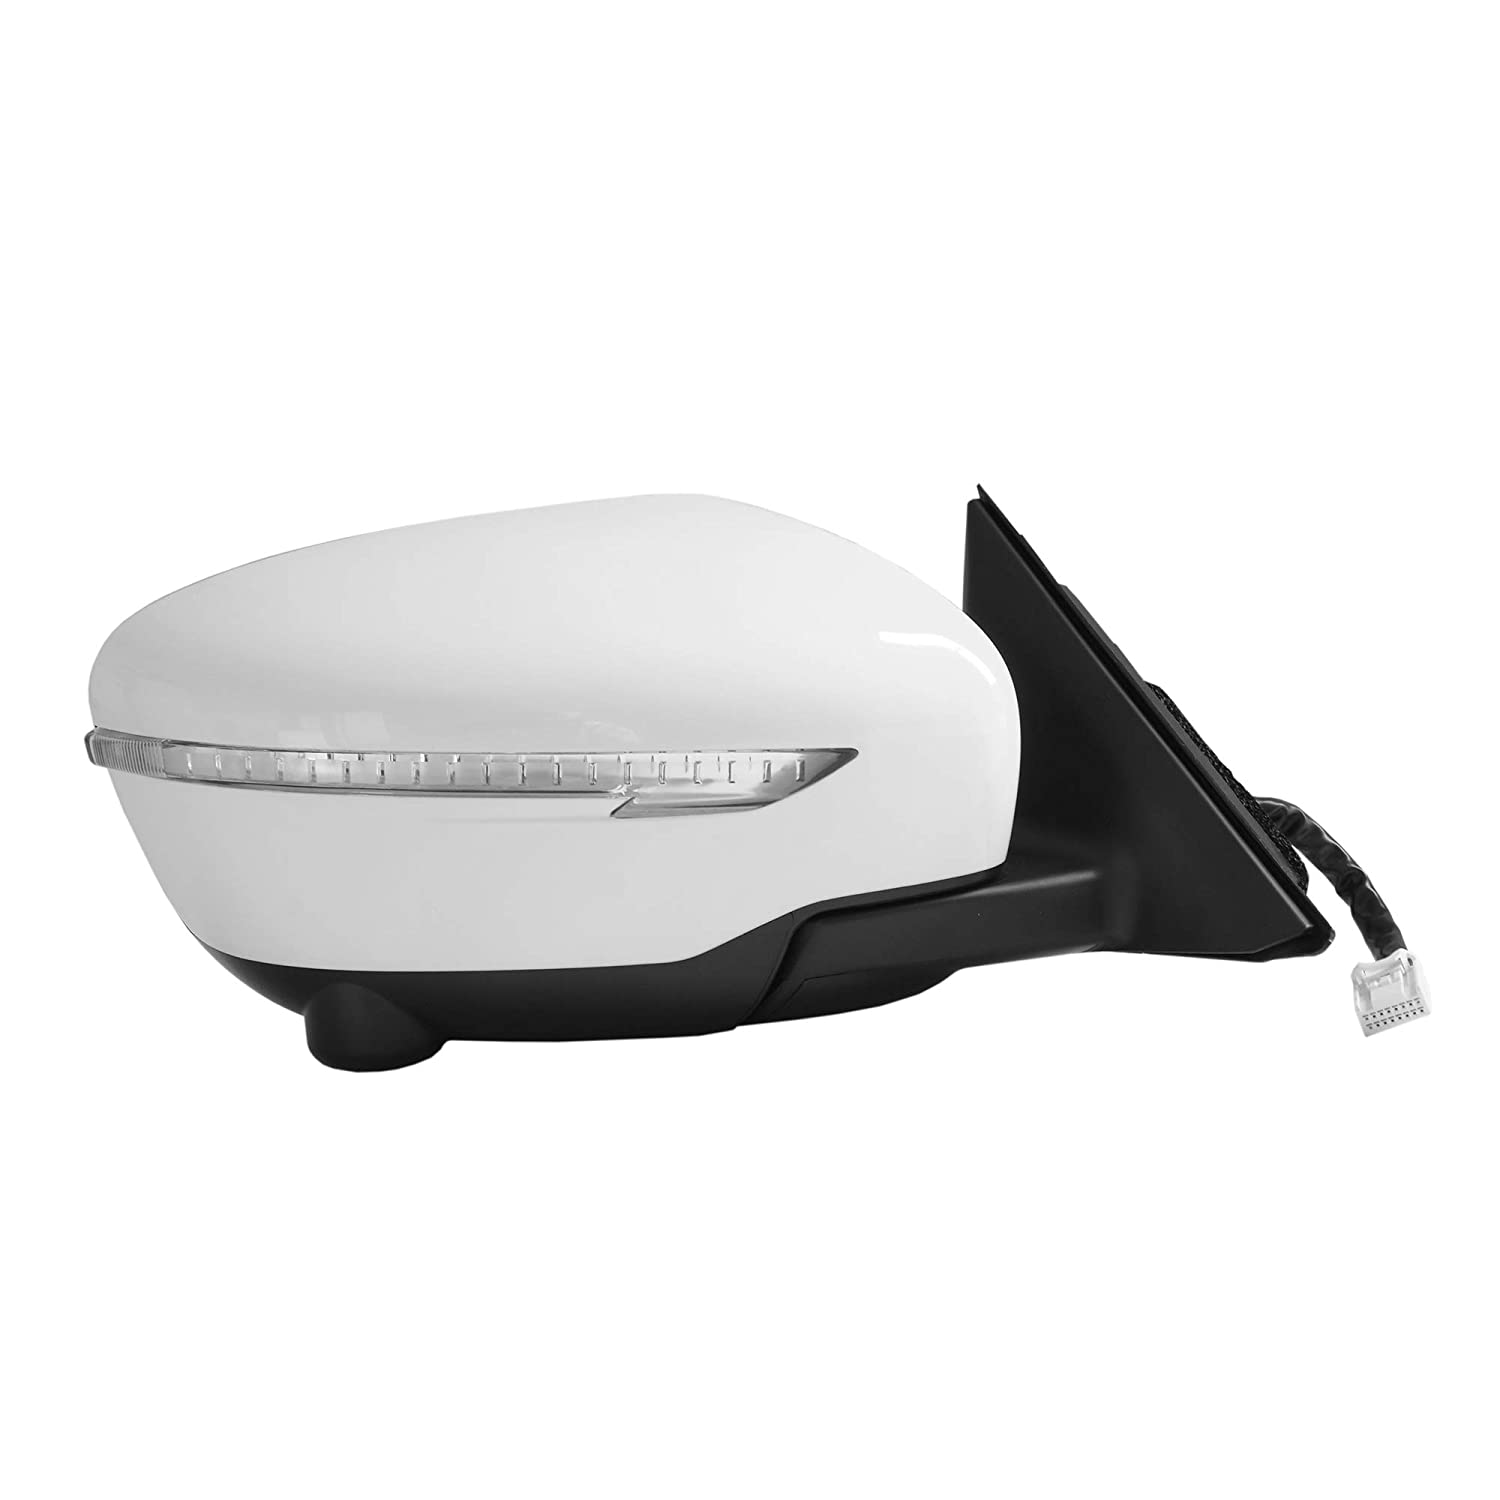 Spieg NI1321271 Side Mirror Replacement for Nissan Rogue Power Heated Glass w//Turn Signal w//360 Degree View Camera Power Folding White Passenger Right